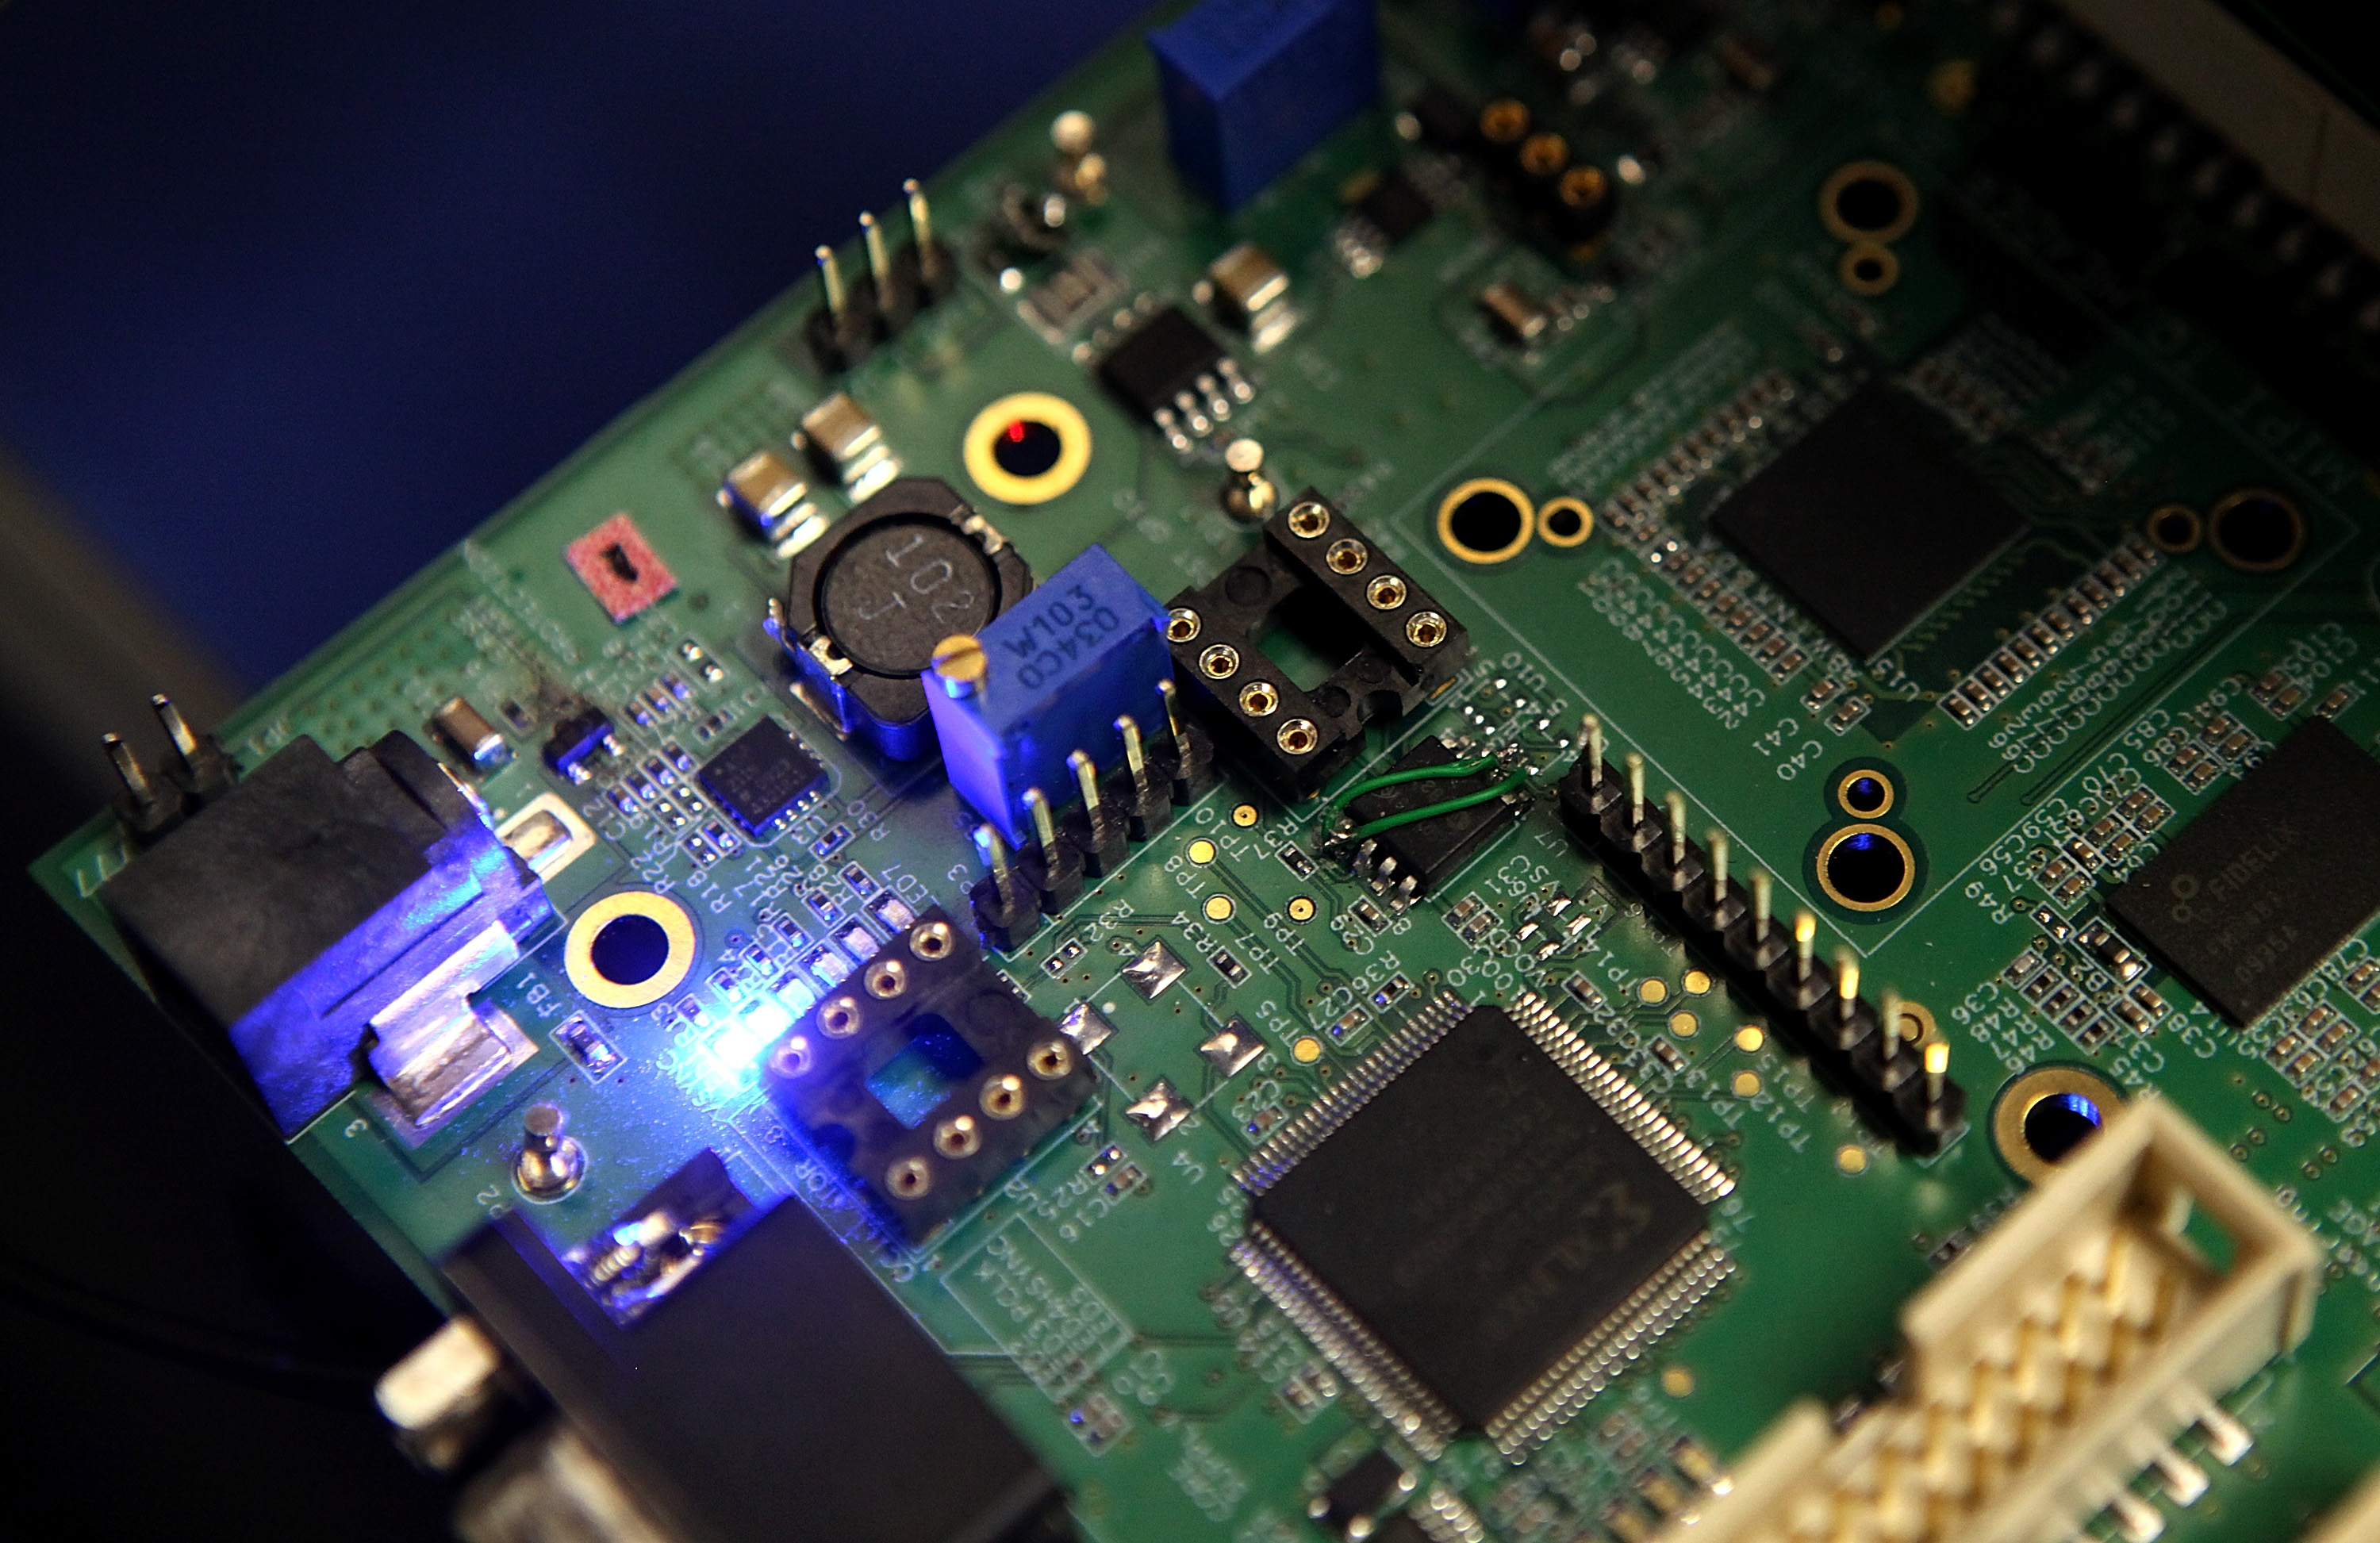 Semiconductors are seen on a circuit board that powers a Samsung video camera at the Samsung MOBILE-ization media and analyst even in San Jose, California t on March 23, 2011. (Photo by Justin Sullivan/Getty Images)